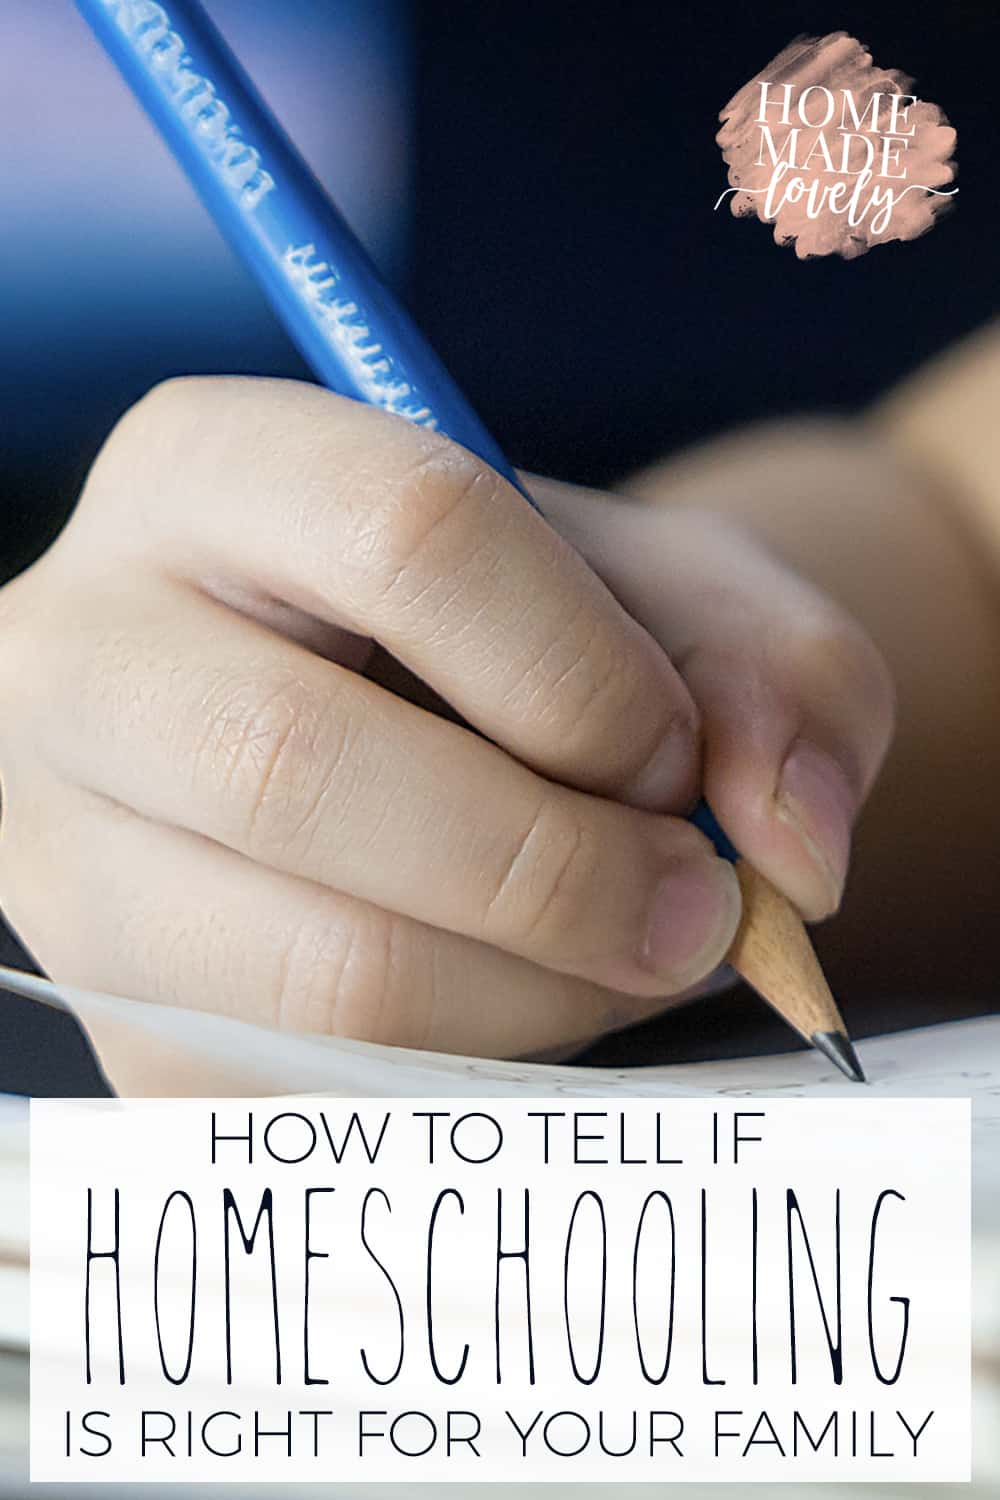 How do you know if you are ready for homeschooling? Homeschooling could be both fun and challenging at the same time. Learn whether you homeschooling is right for your family using a few critical tips in this article.